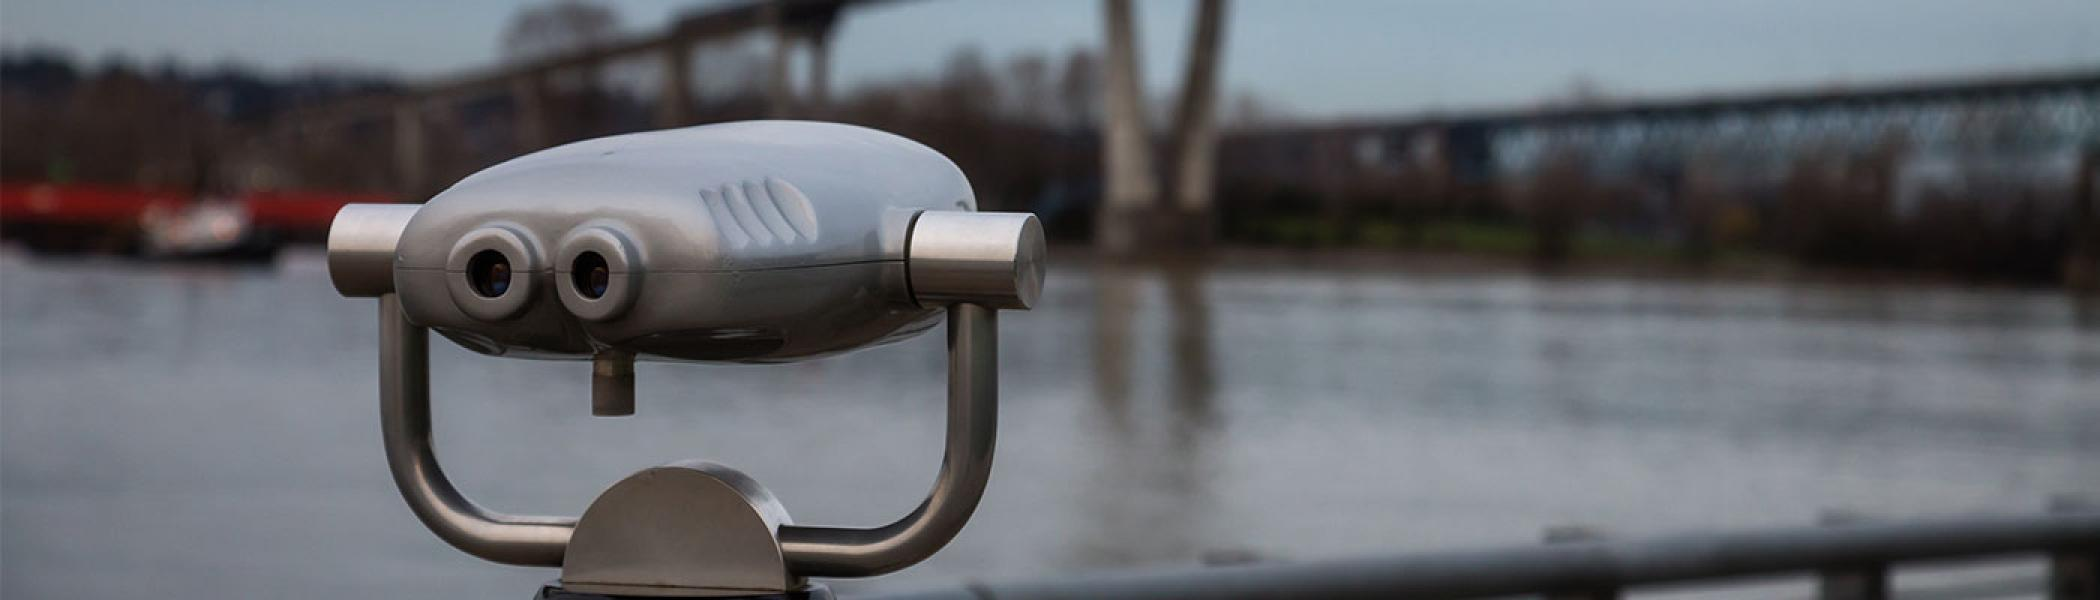 Image of a set of binoculars looking over a river at a bridge.